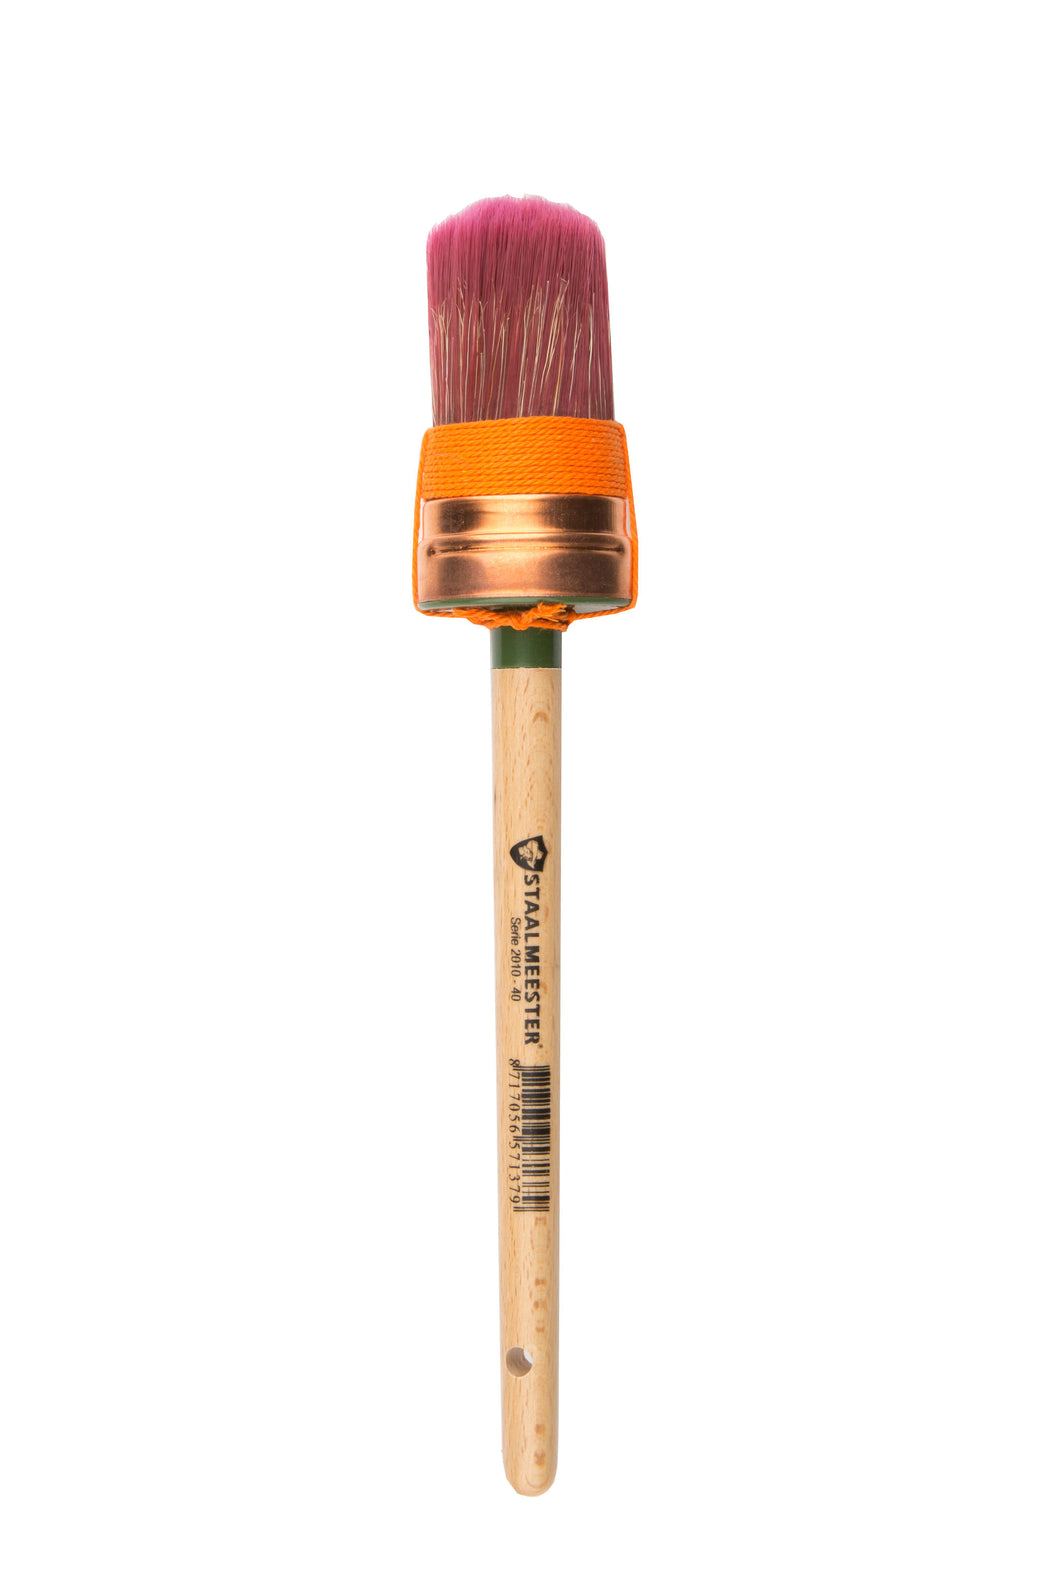 Oval #40 Staalmeester Brush